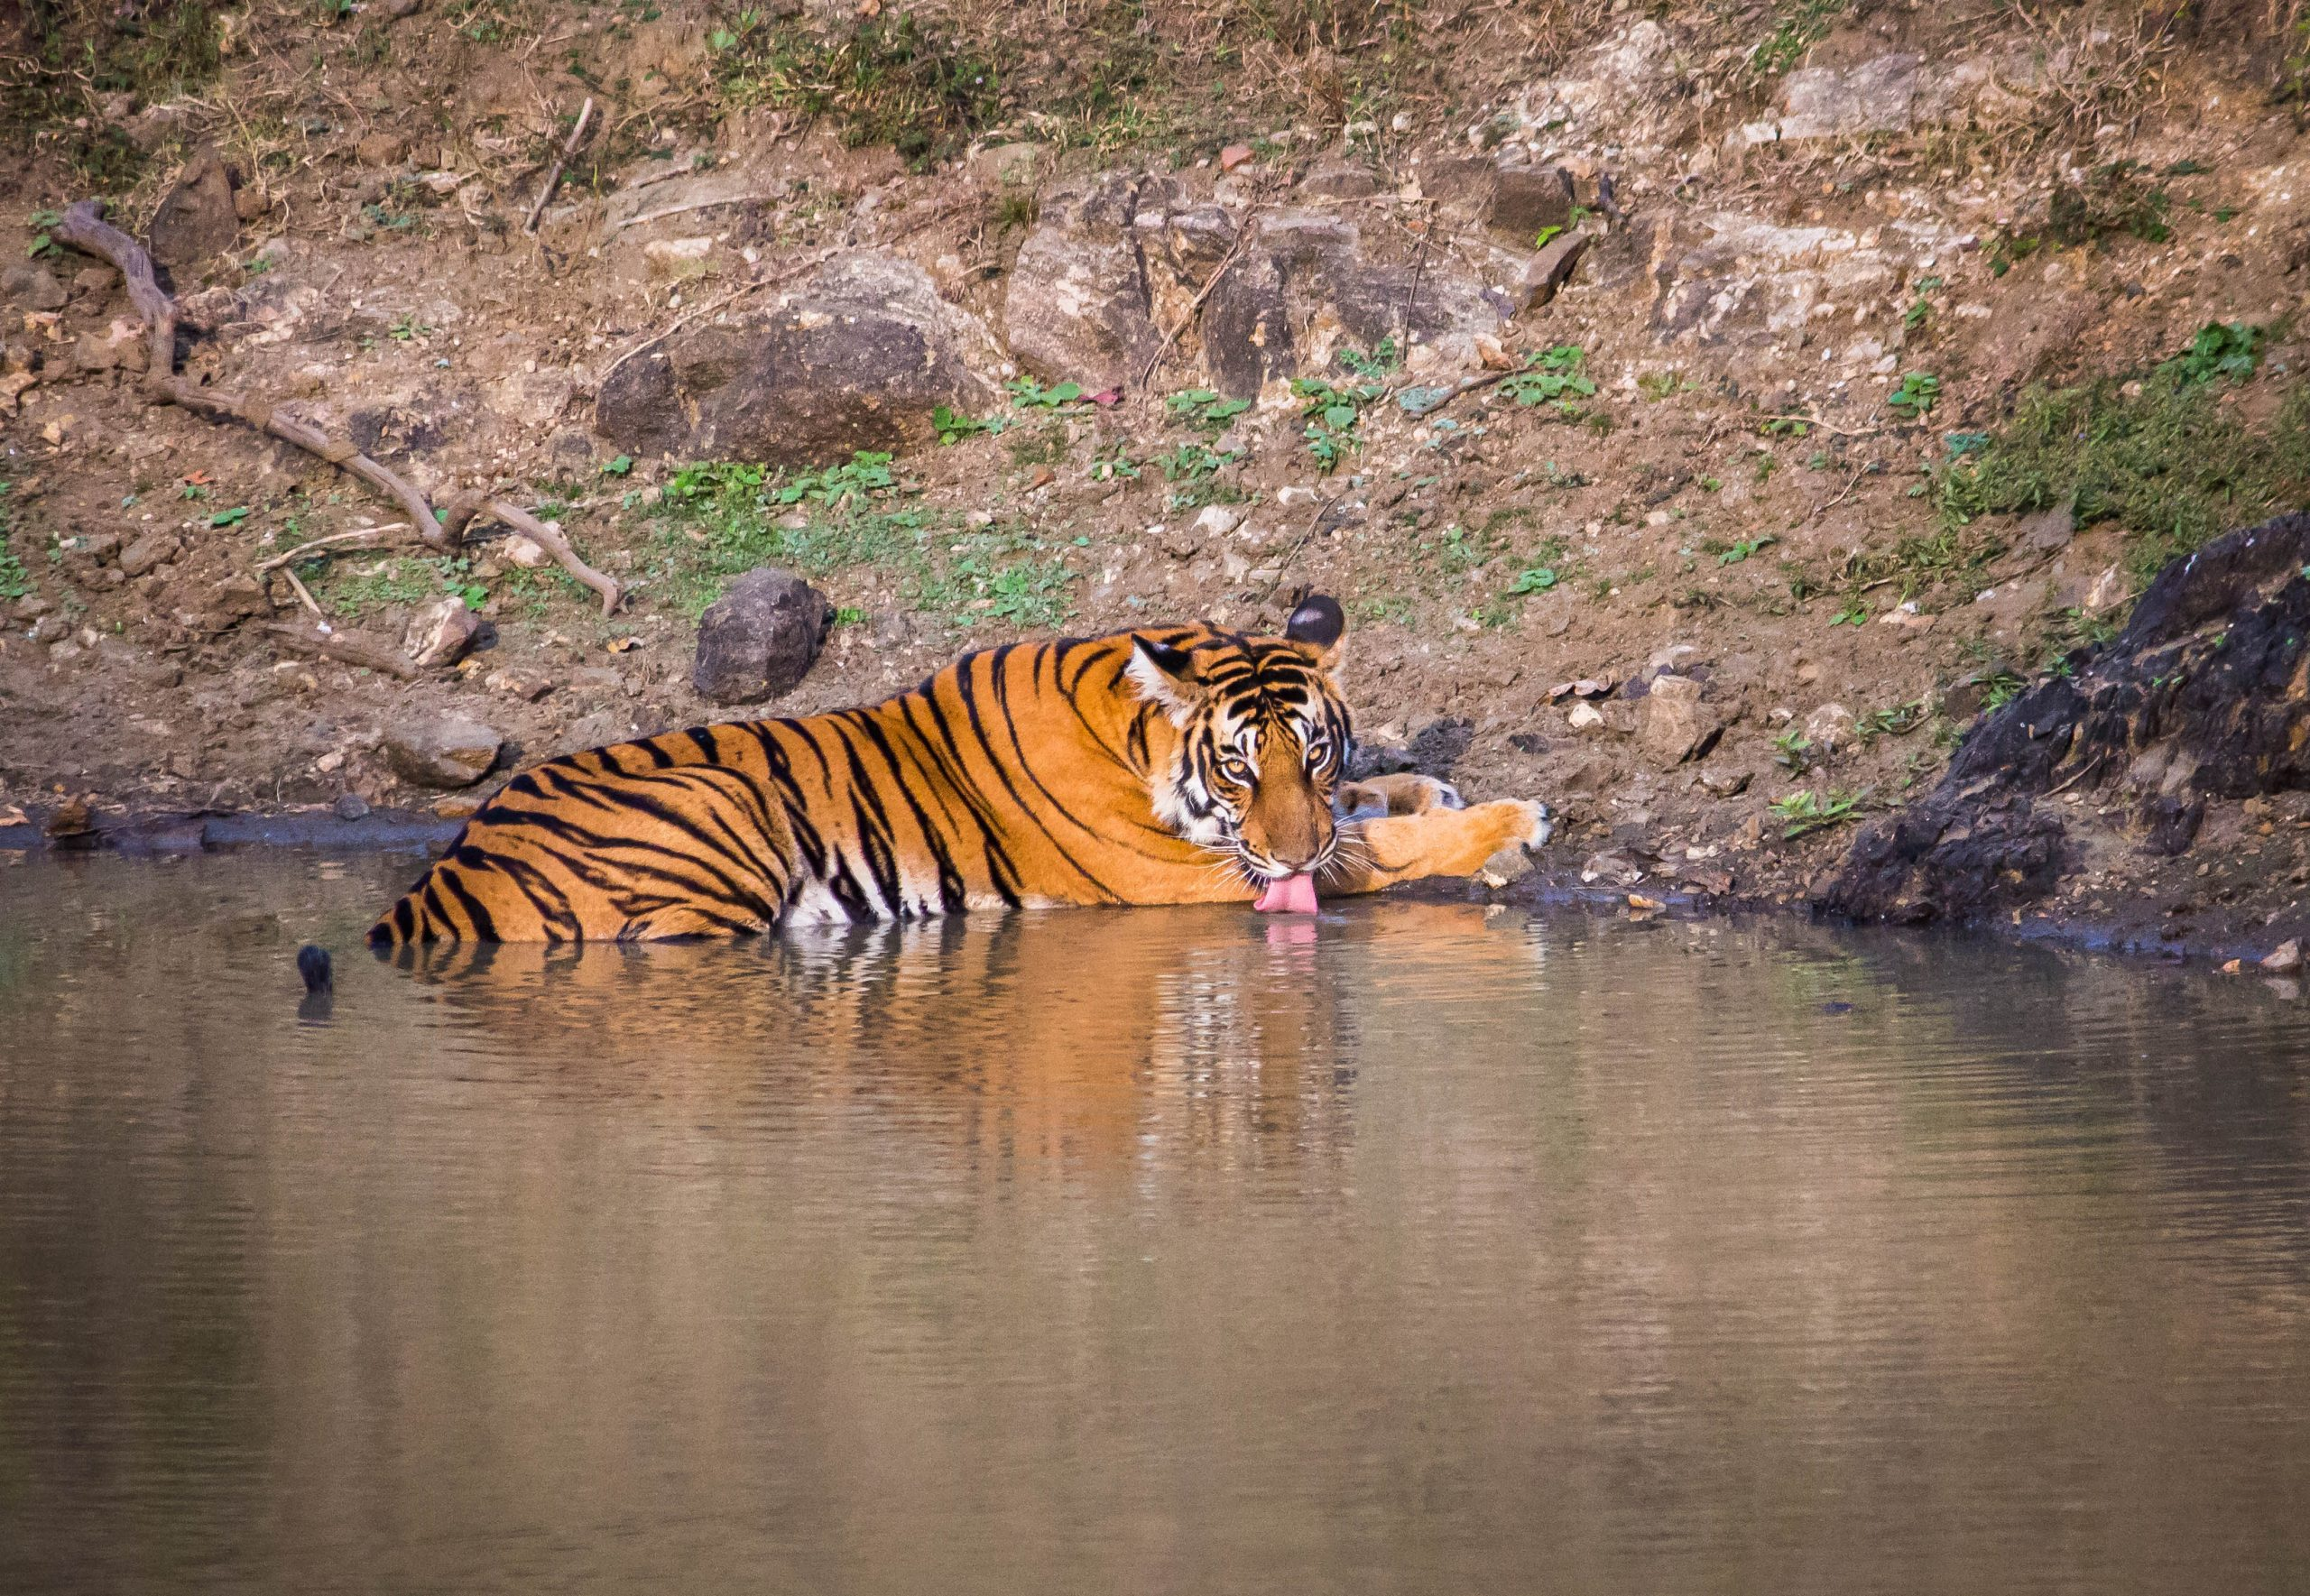 a tiger sitting in water